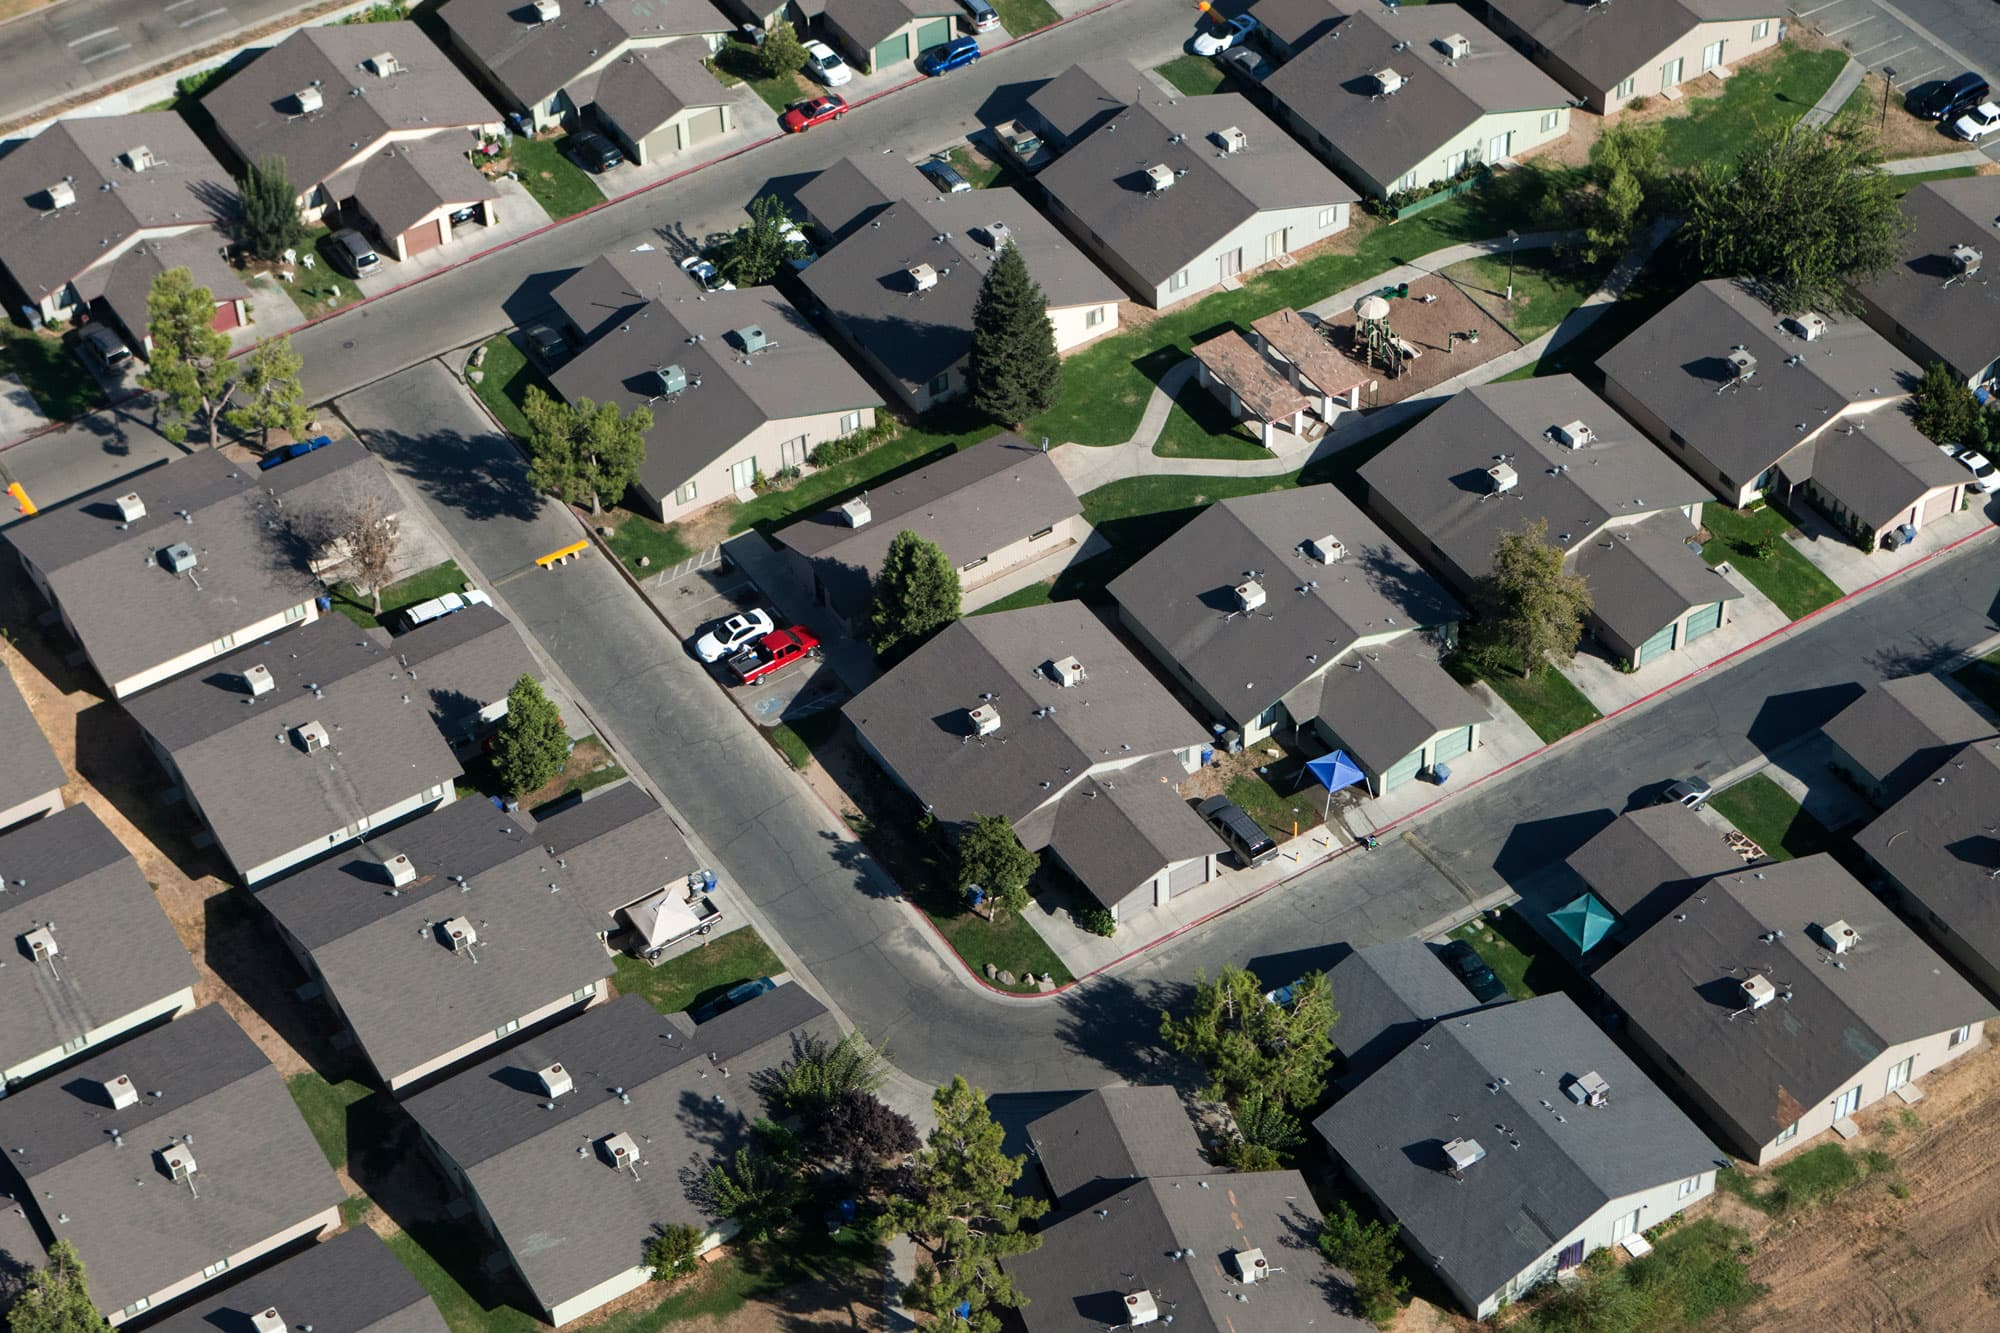 People flee cities to live in suburbs